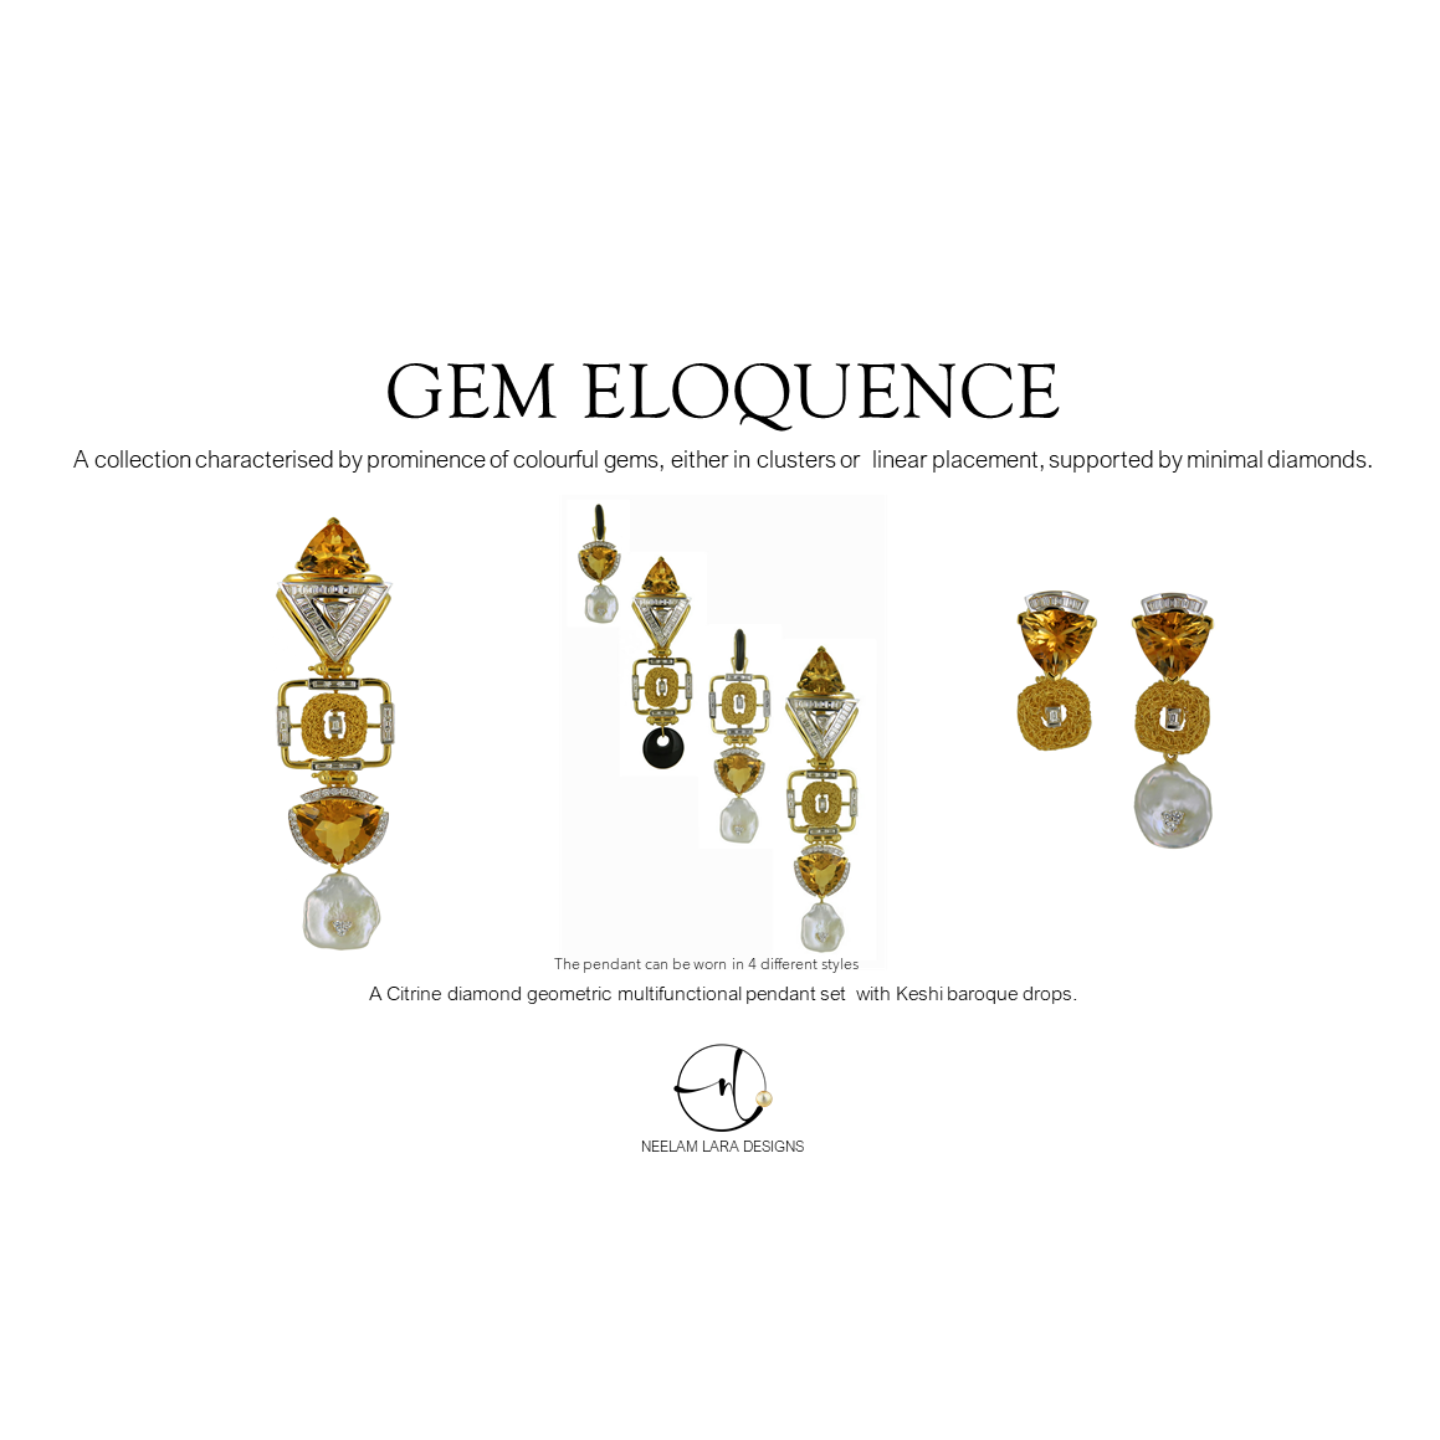 A citrine diamond geometric inspired pendant and earrings, boasting of multifunctional wearability